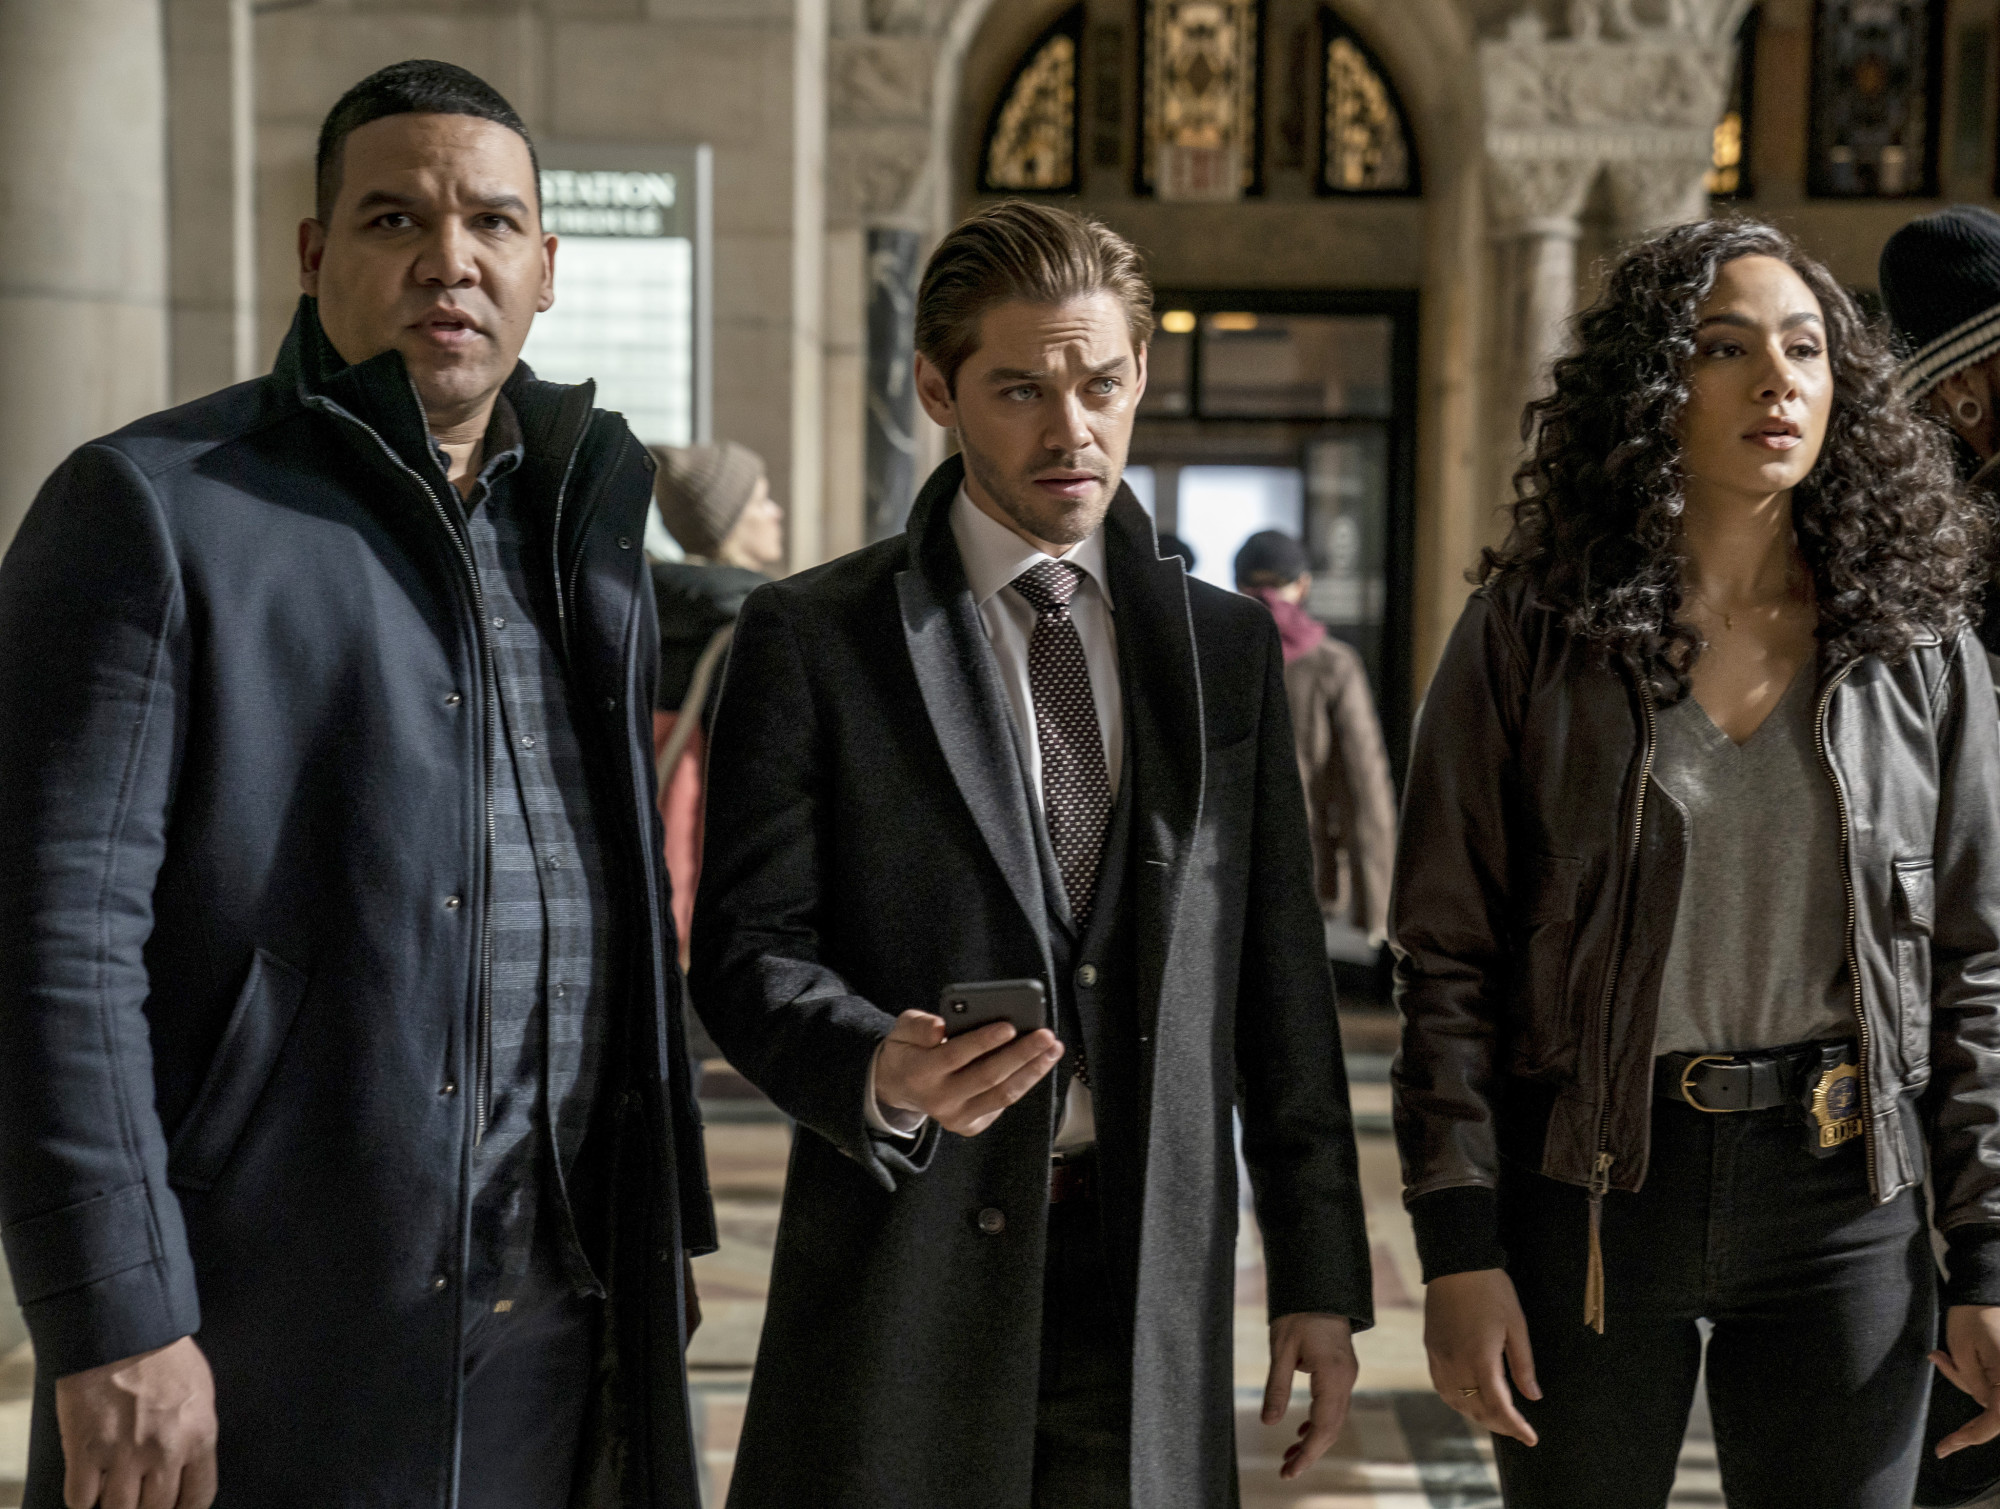 """PRODIGAL SON:  L-R:  Frank Harts, Tom Payne and Aurora Perrineau in """"The Professionals"""" episode of PRODIGAL SON airing Monday, April 20 (9:01-10:00 PM ET/PT) on FOX. © 2020 FOX MEDIA LLC. Cr: Zach Dilgard/FOX."""